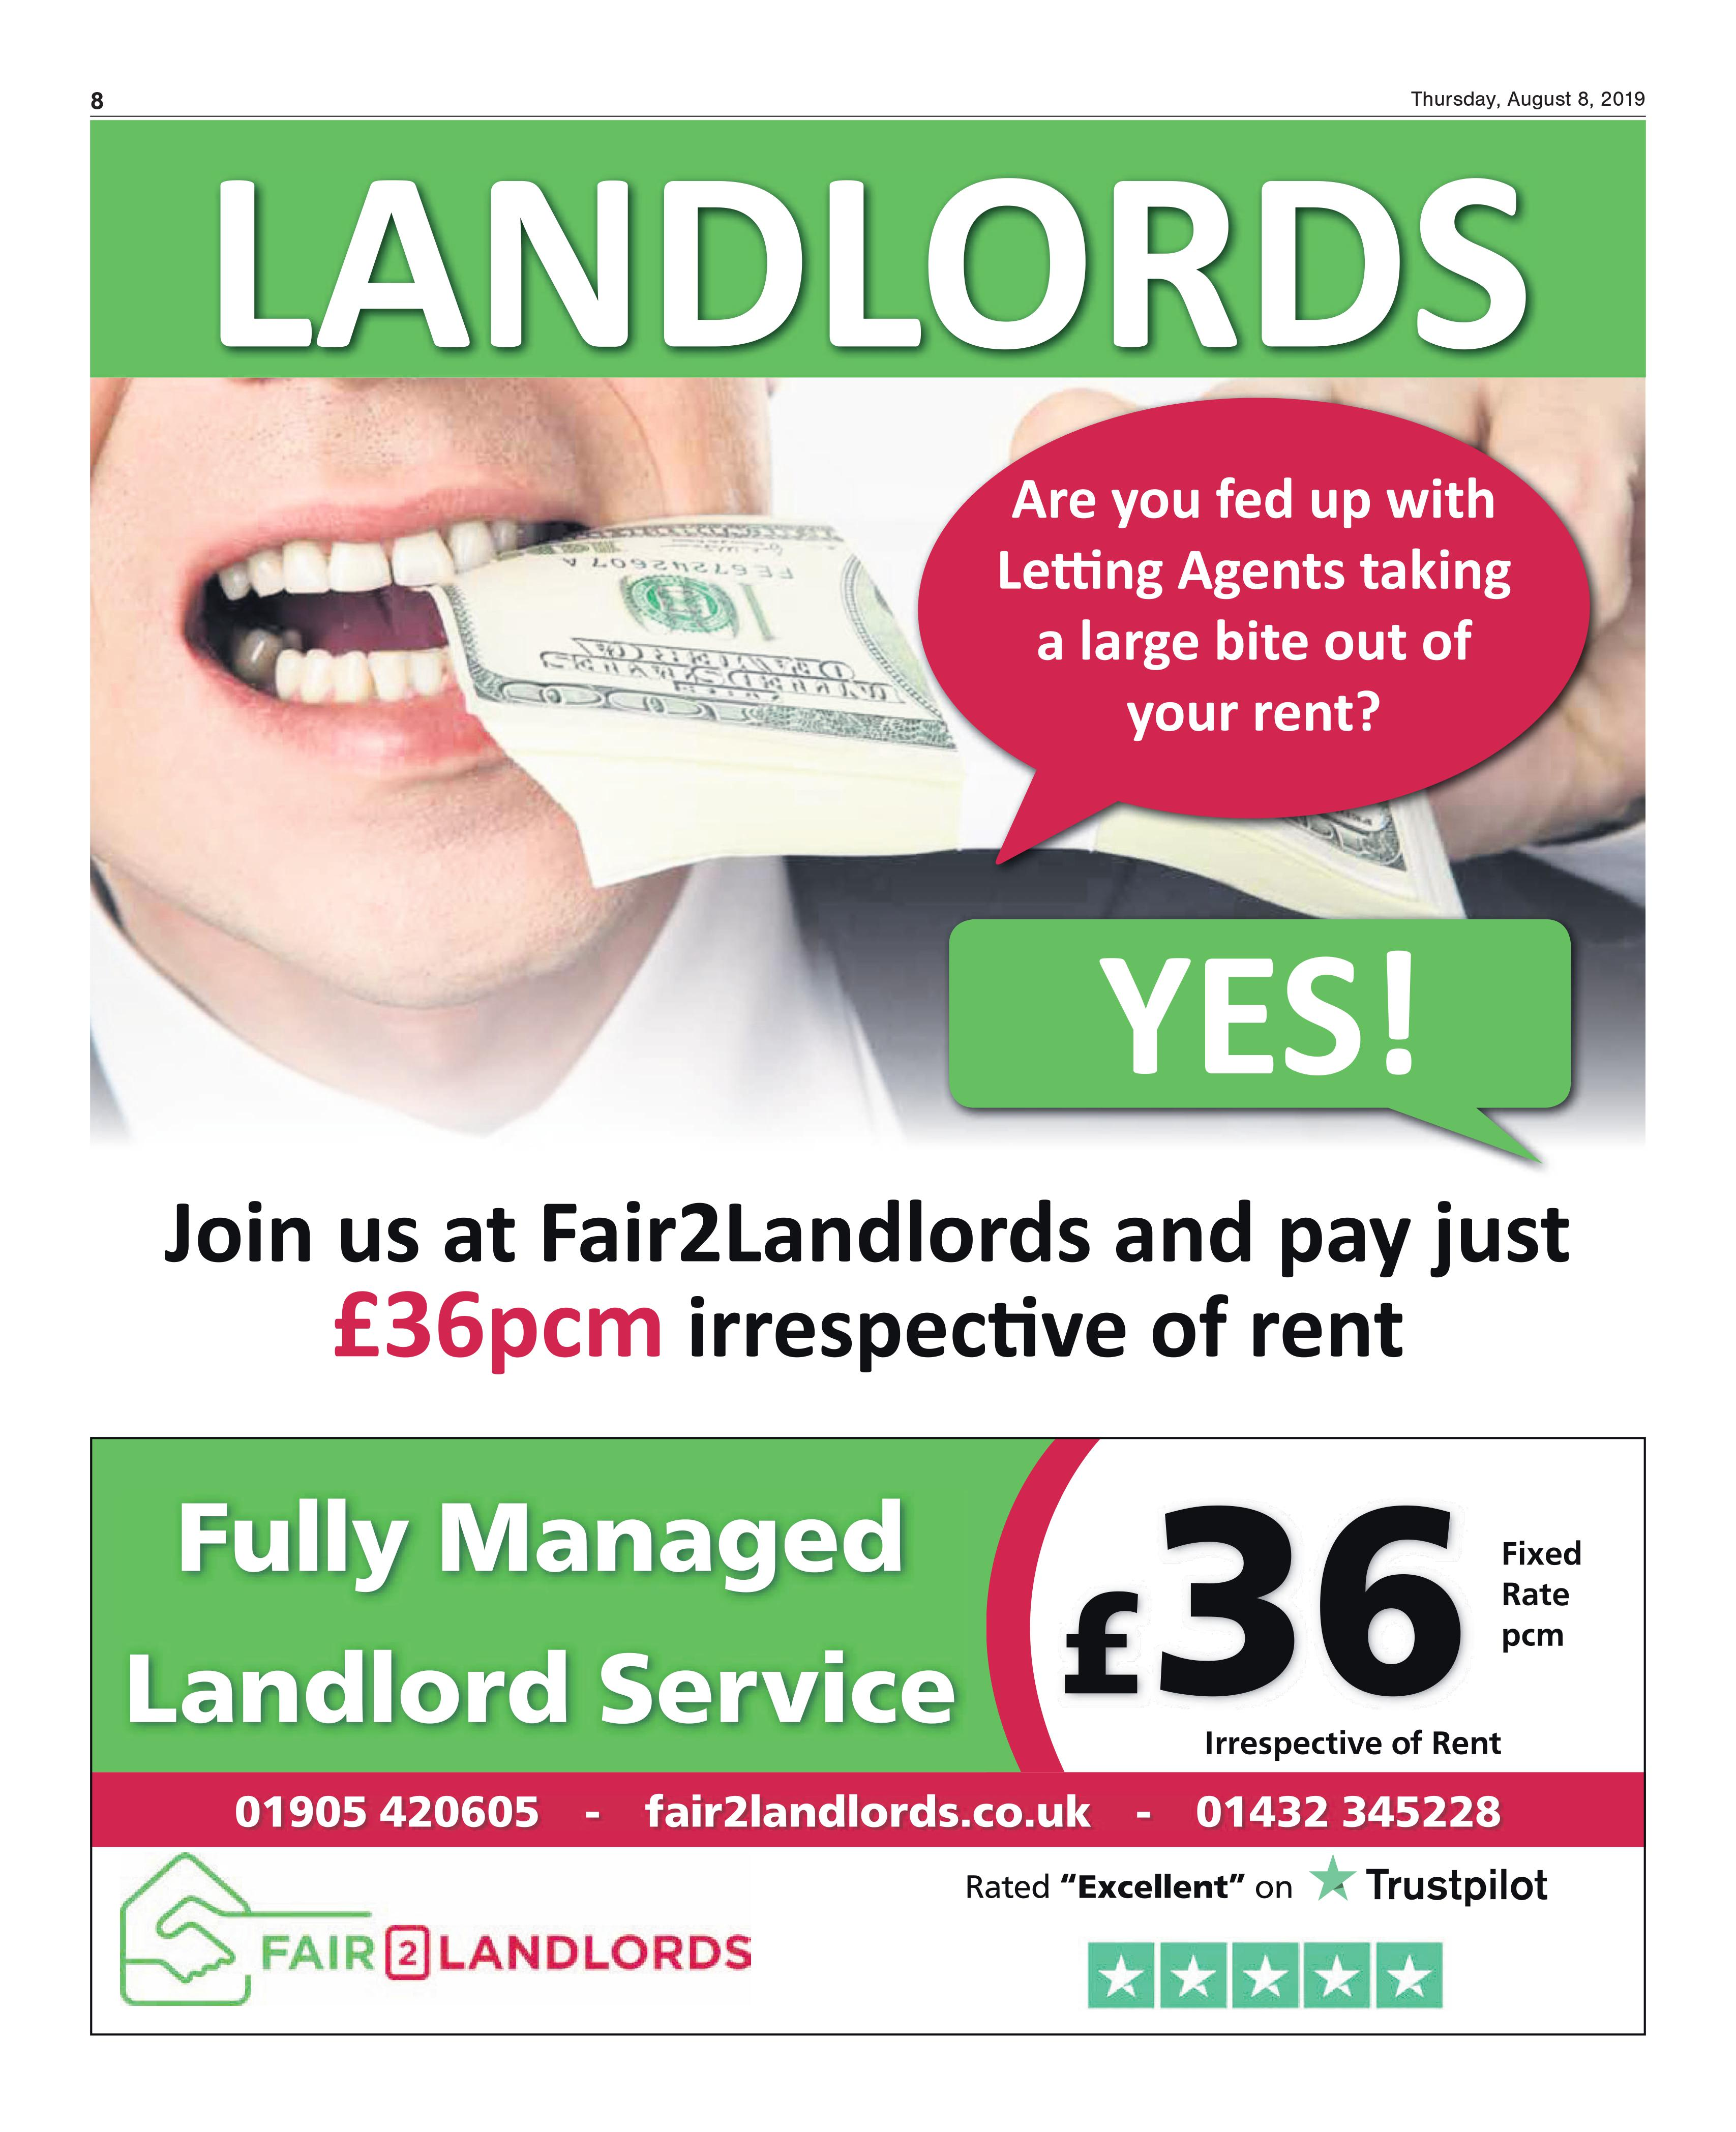 Landlords are you fed up with Letting Agents taking a large bite out of your rent